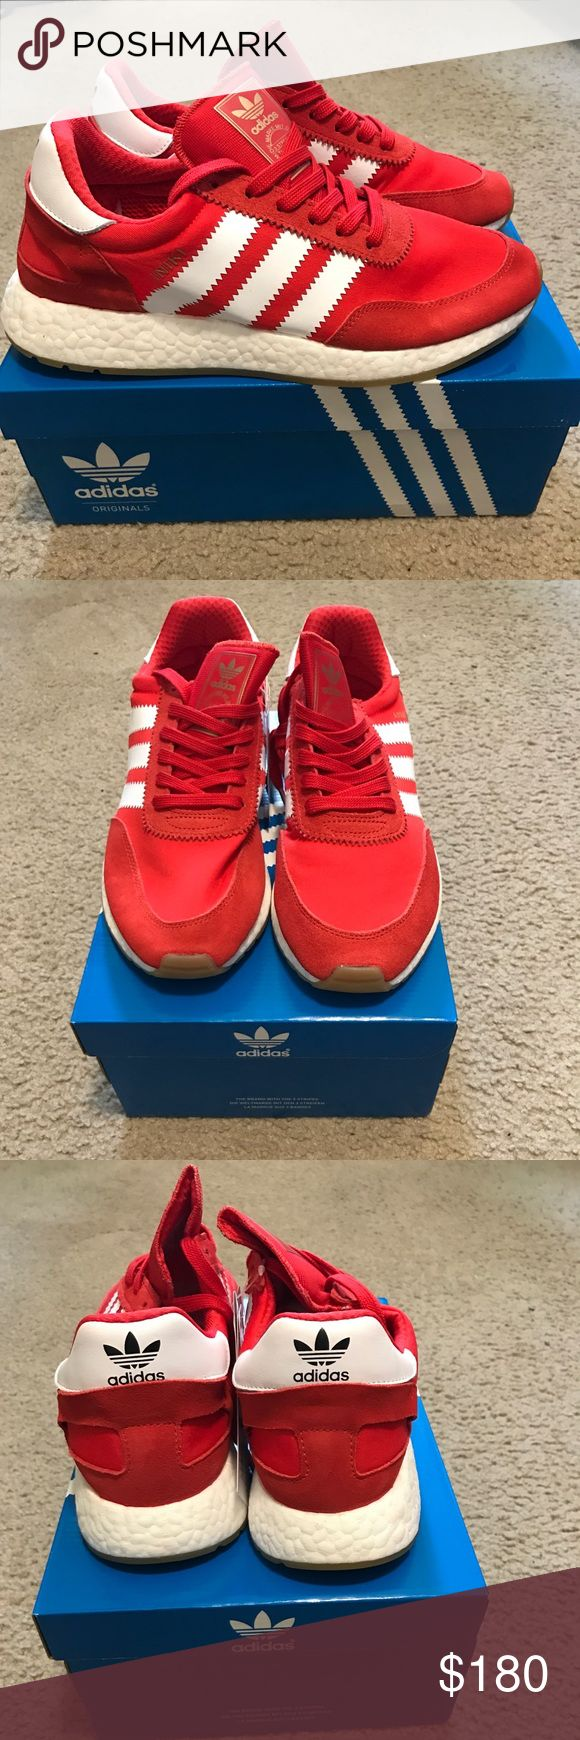 Adidas Iniki Runner red/white Retro styled runner from Adidas with the boost sole Adidas Shoes Sneakers